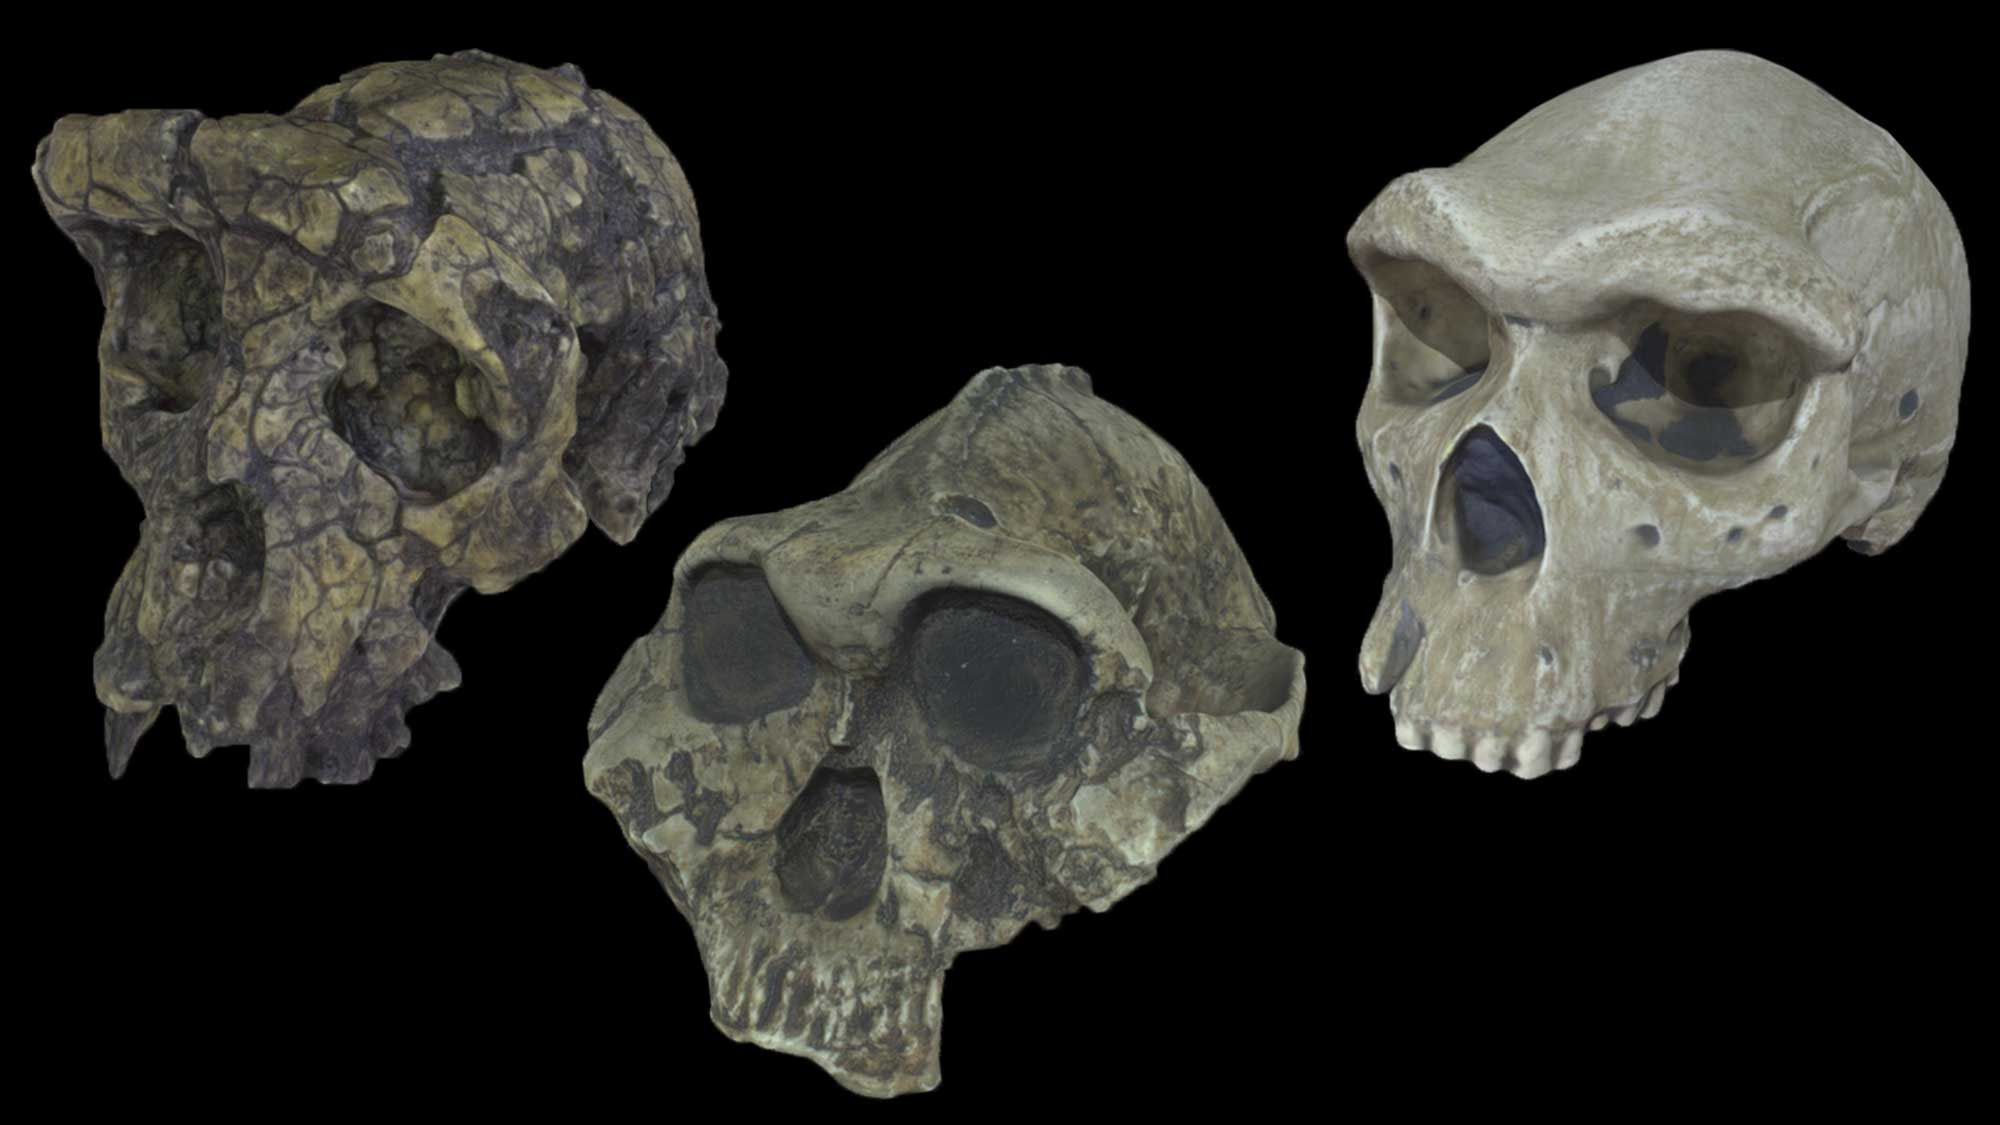 Image showing 3D scans of the skulls of three ancient hominids.